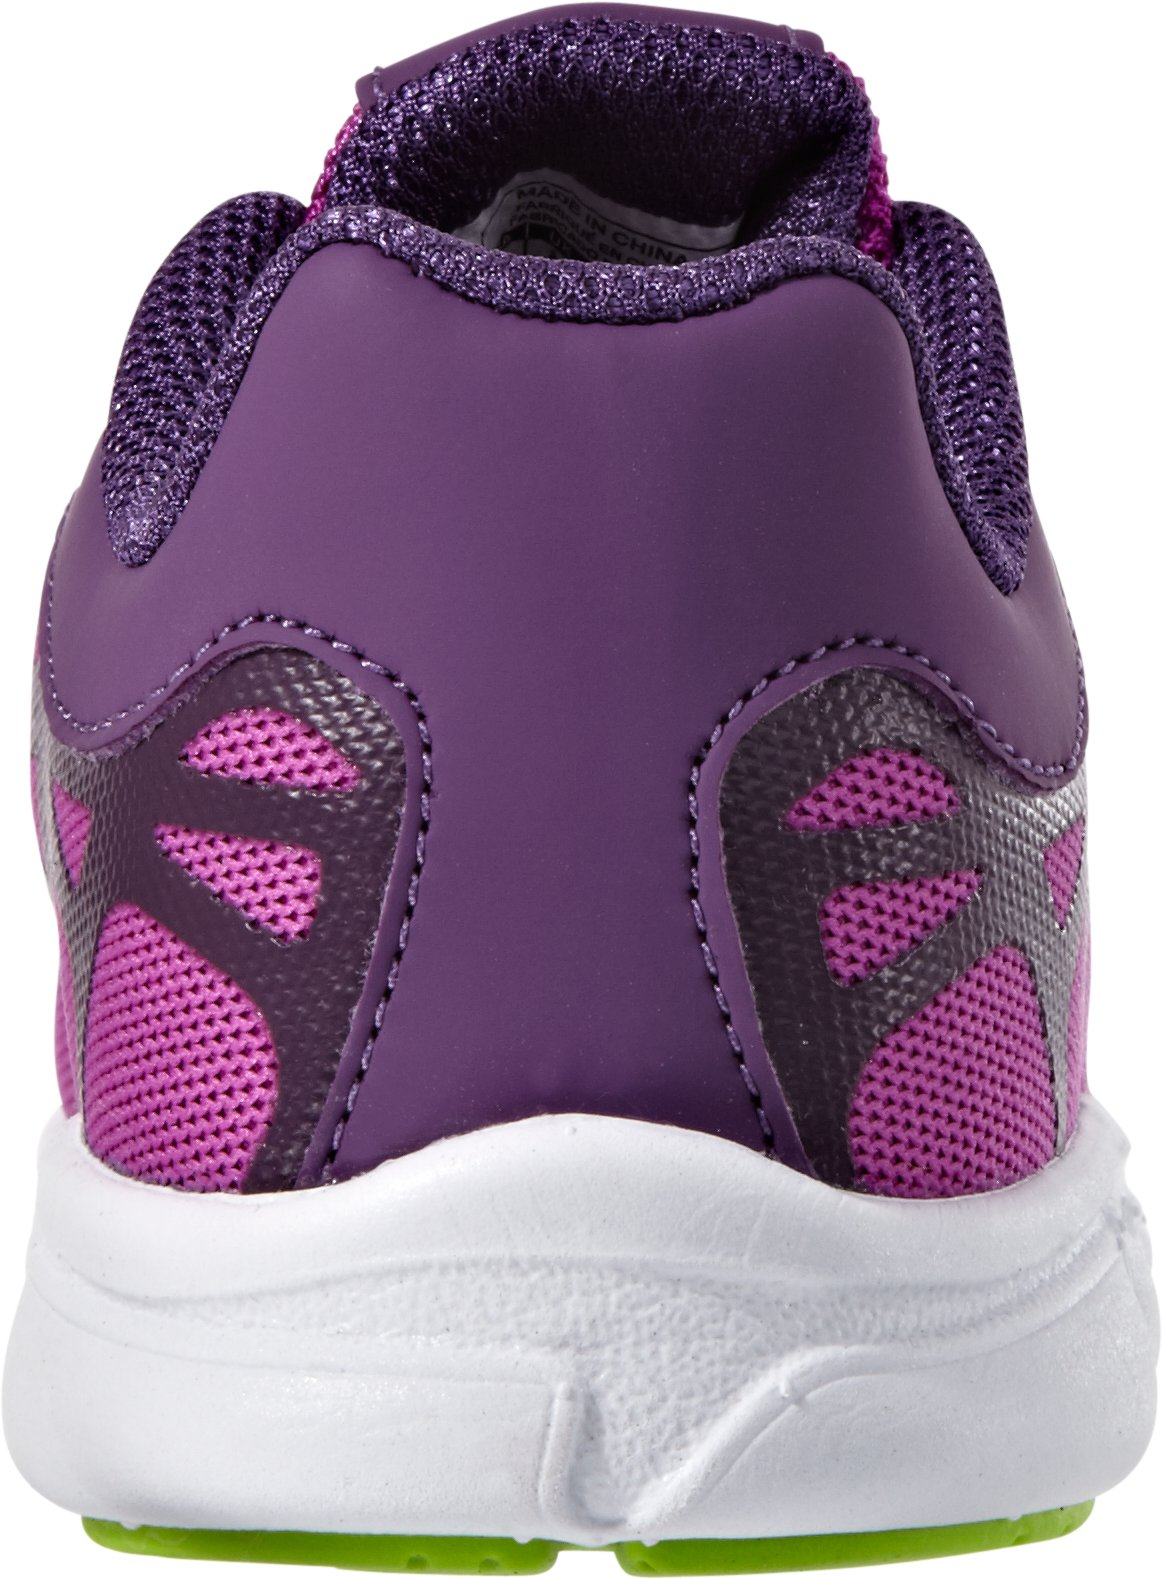 Girls' Infant UA Spine Vice, Metallic Silver